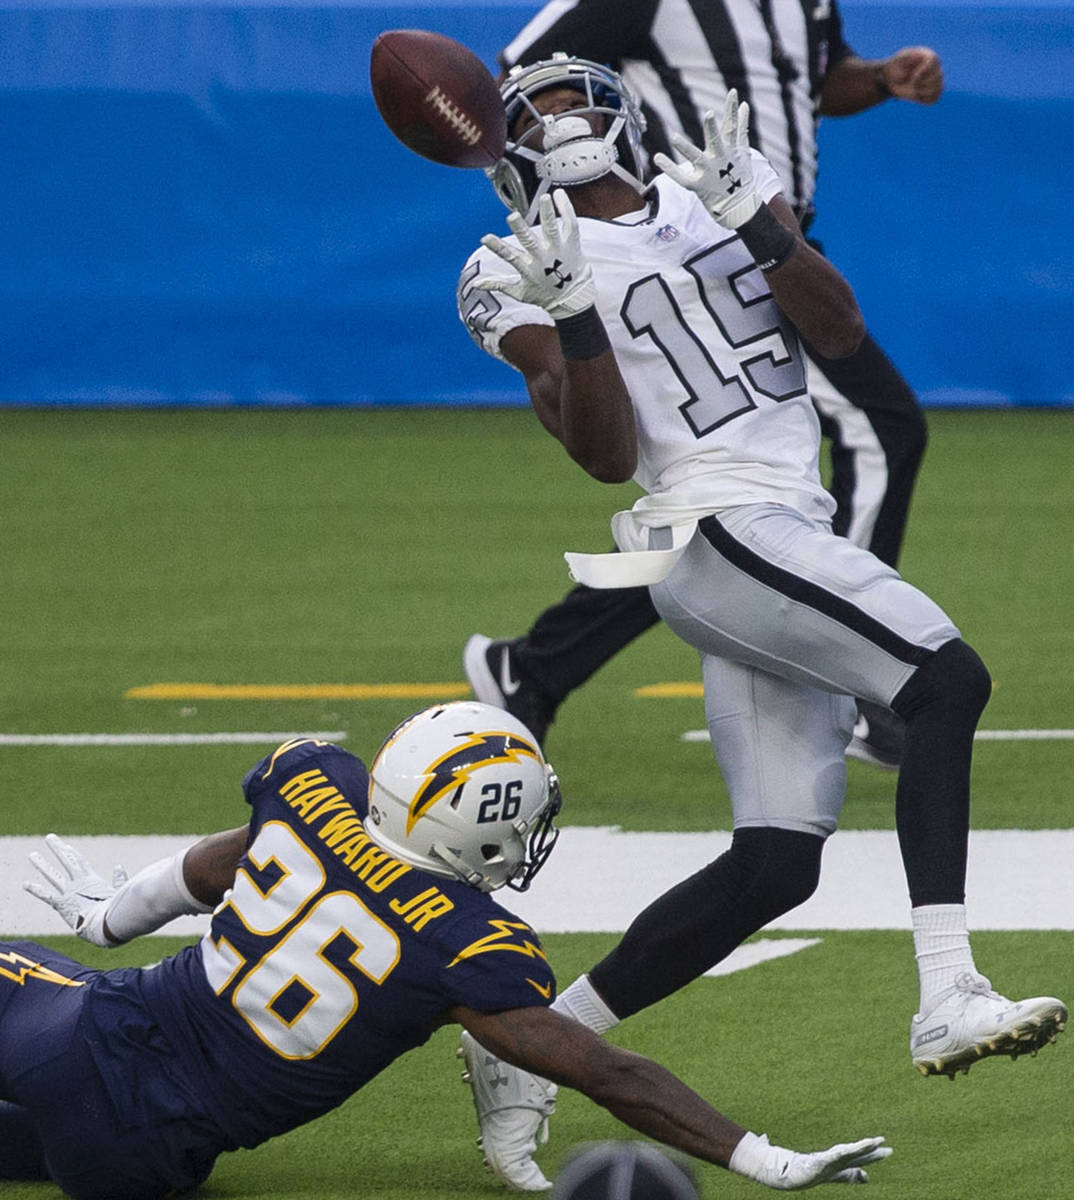 Las Vegas Raiders wide receiver Nelson Agholor (15) prepares to make a catch over Los Angeles C ...